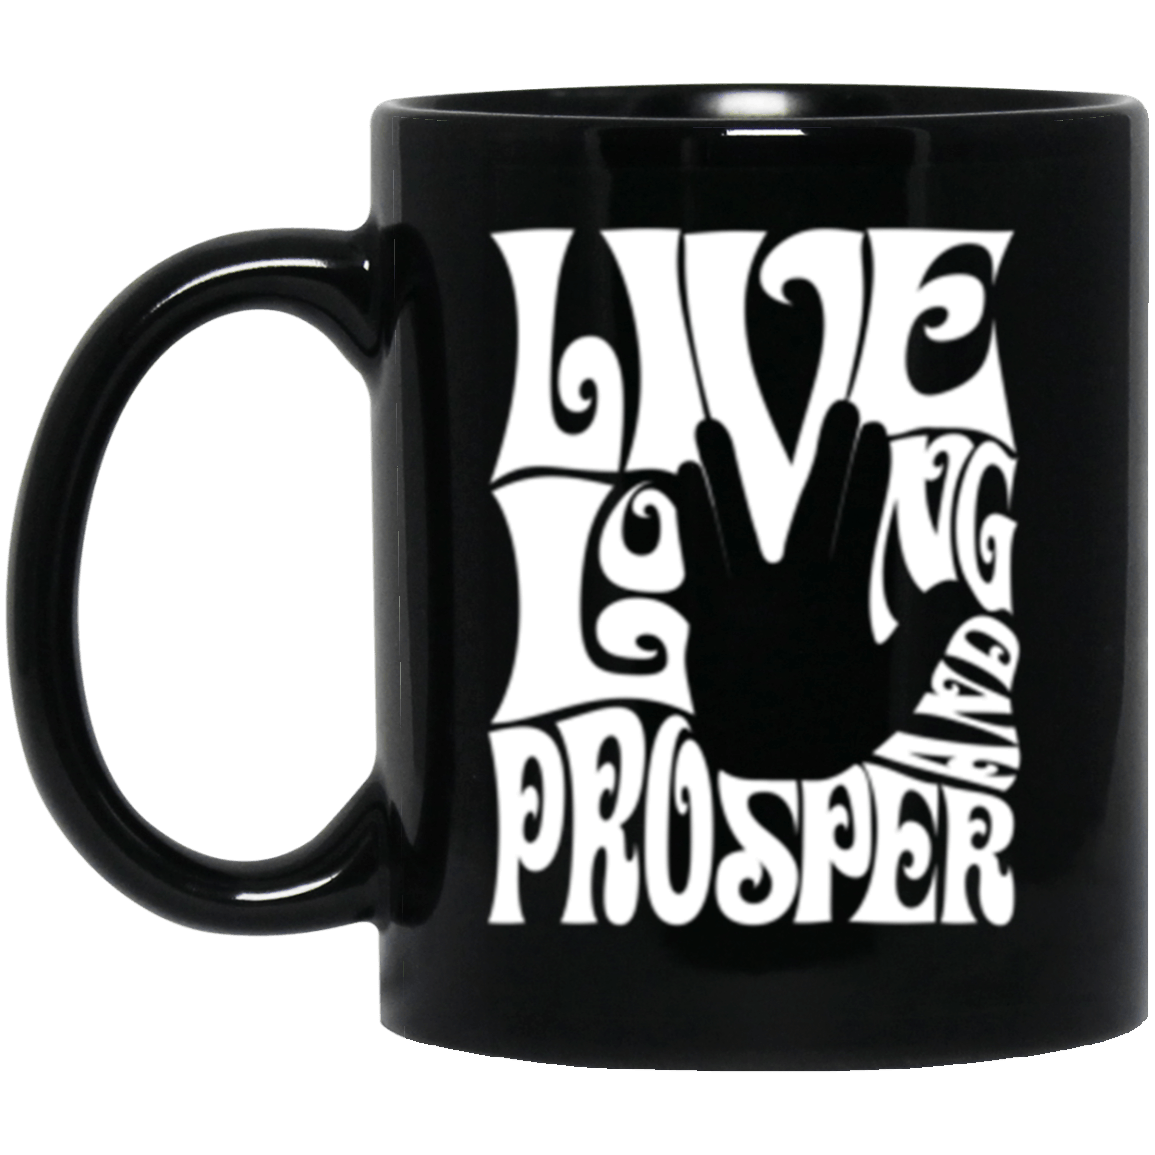 Prosper Retro Black Mug 11oz (2-sided)